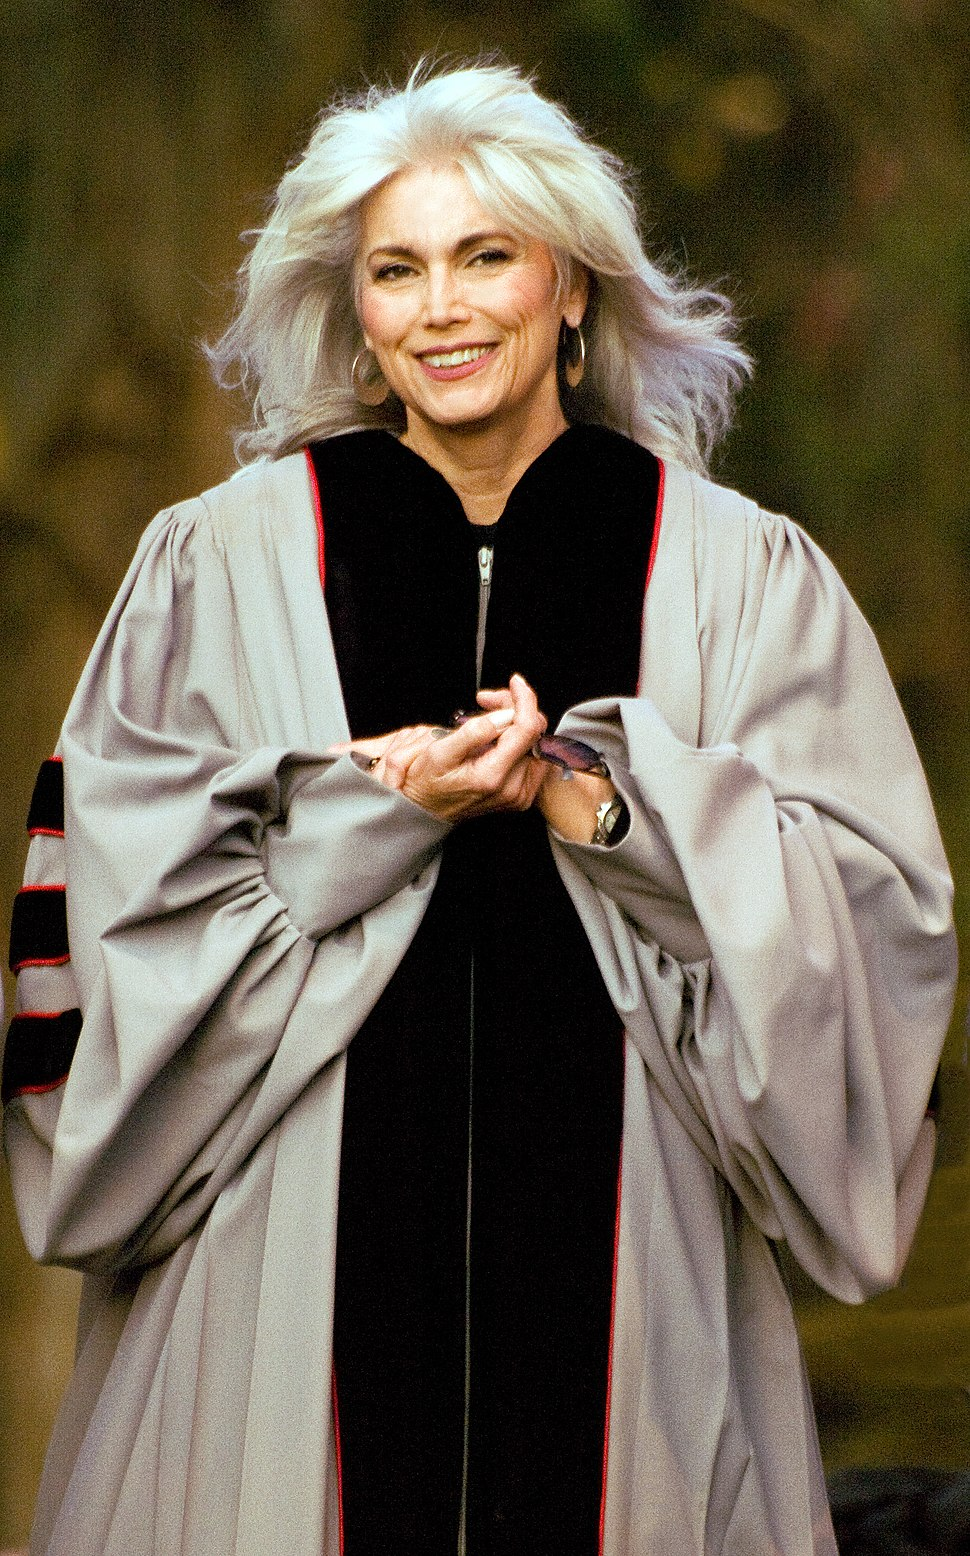 Emmylou Harris, Honorary Doctorate From Berklee Presentation, 2009